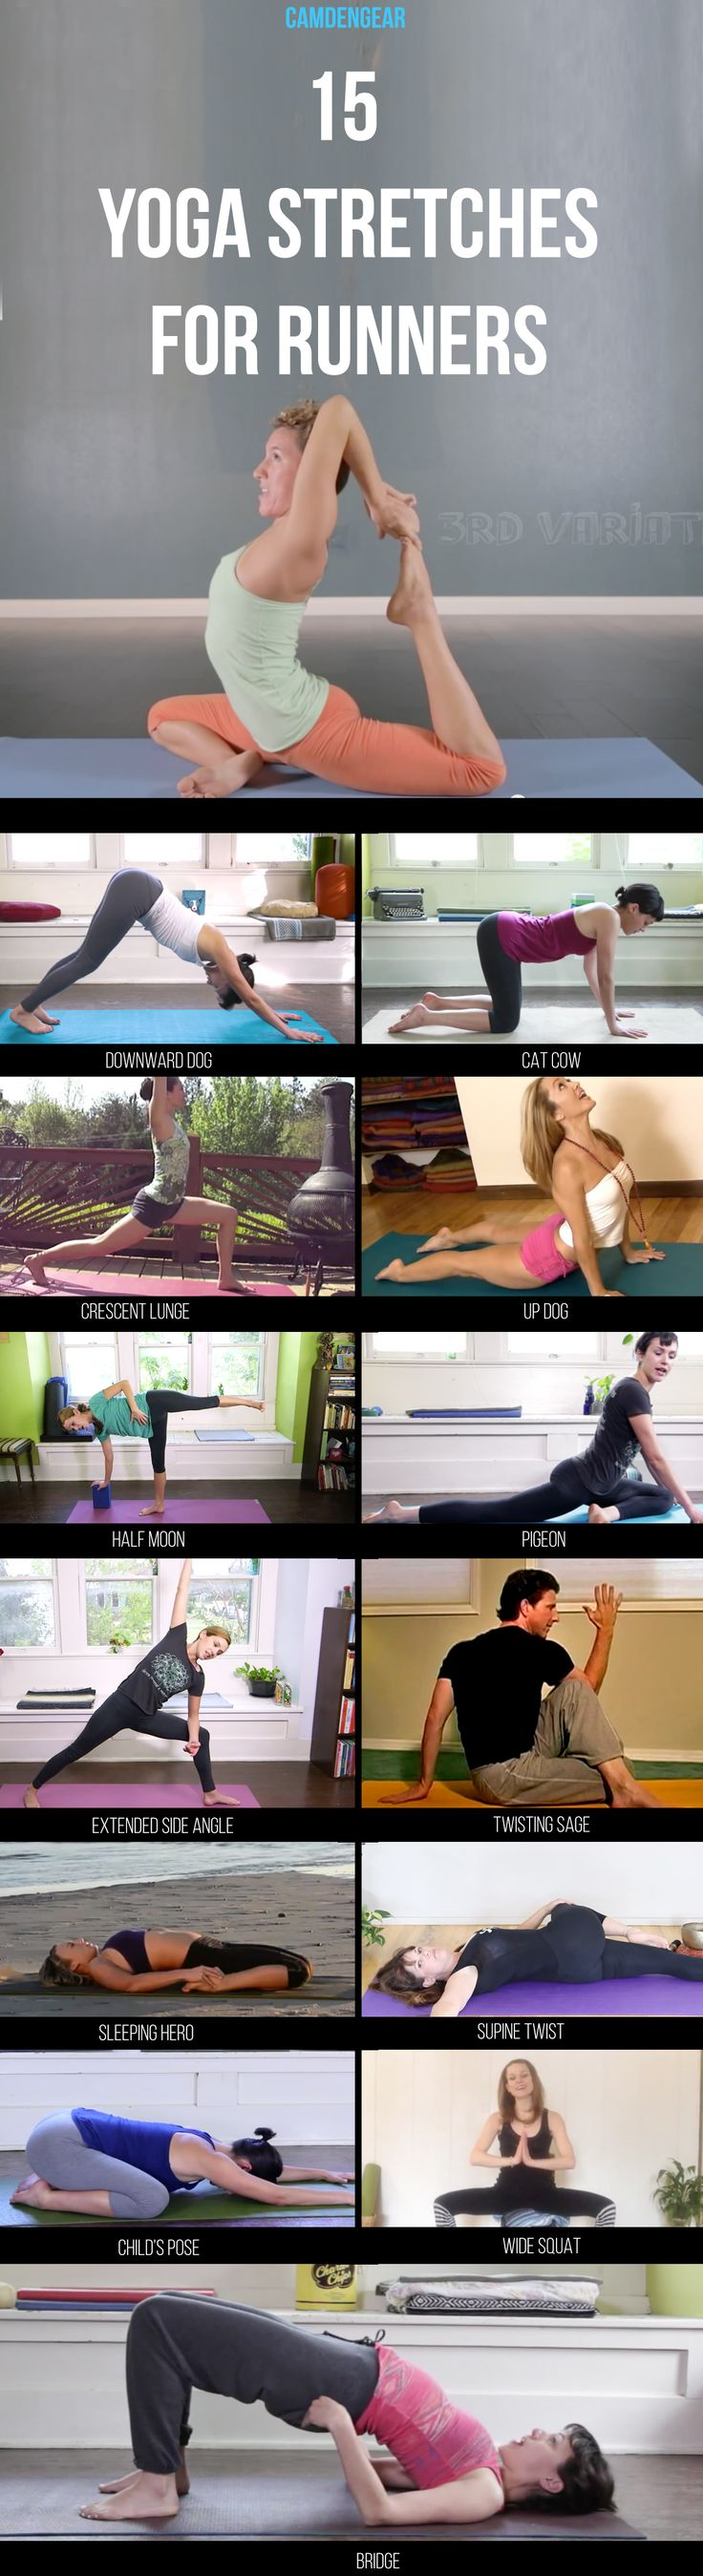 These poses help you pre and post-run to get those limbs flexible and reduce the chance on injury.